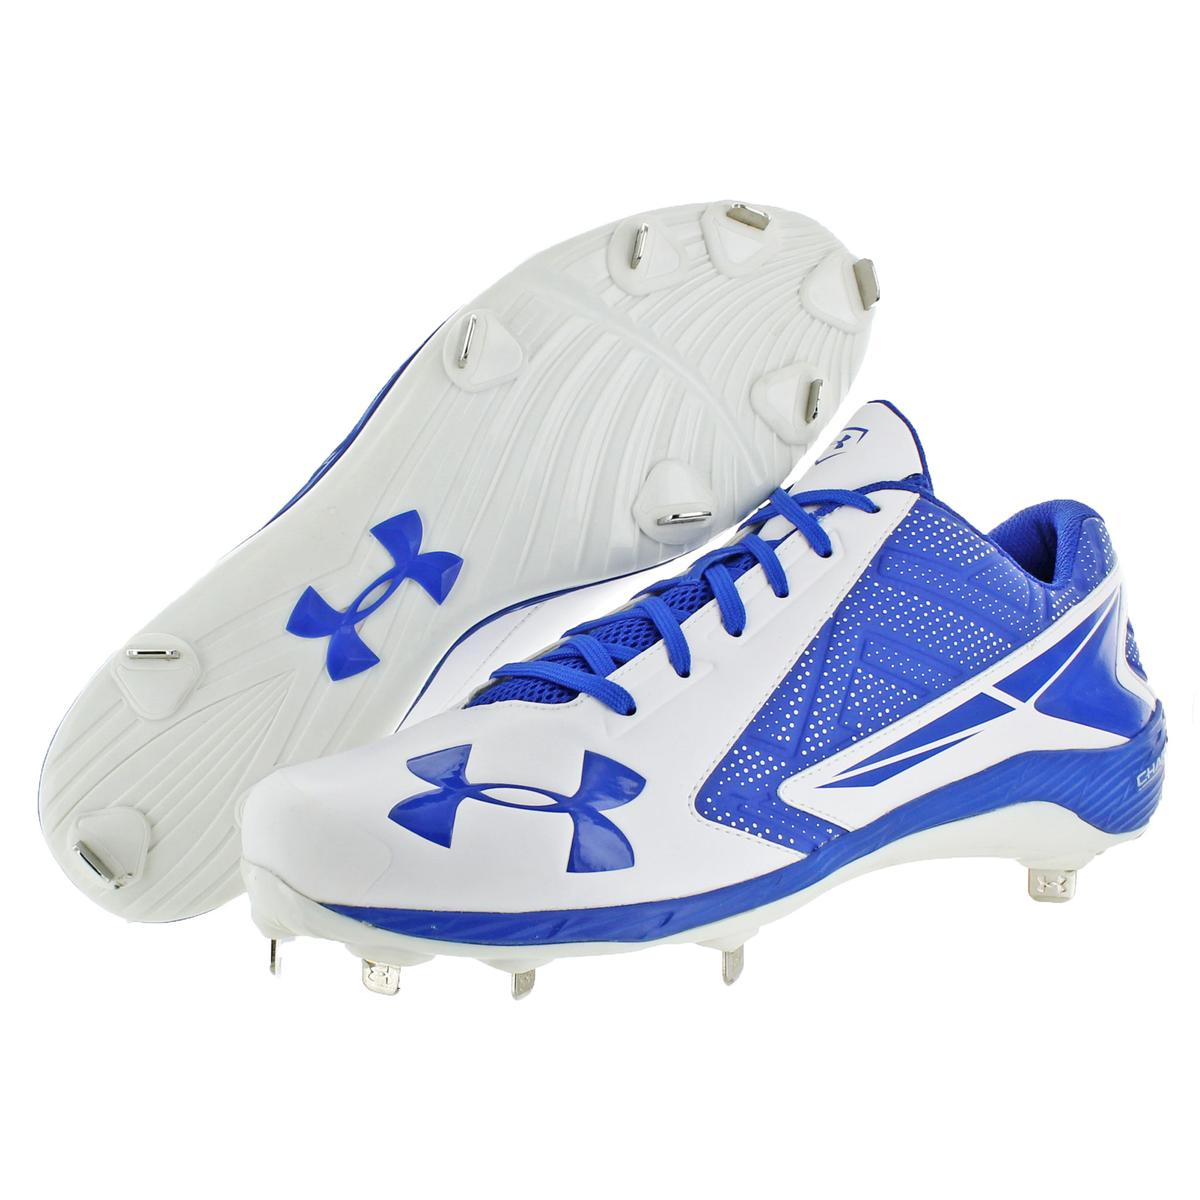 Under Armour Mens Yard Low St Athletic Baseball Cleats